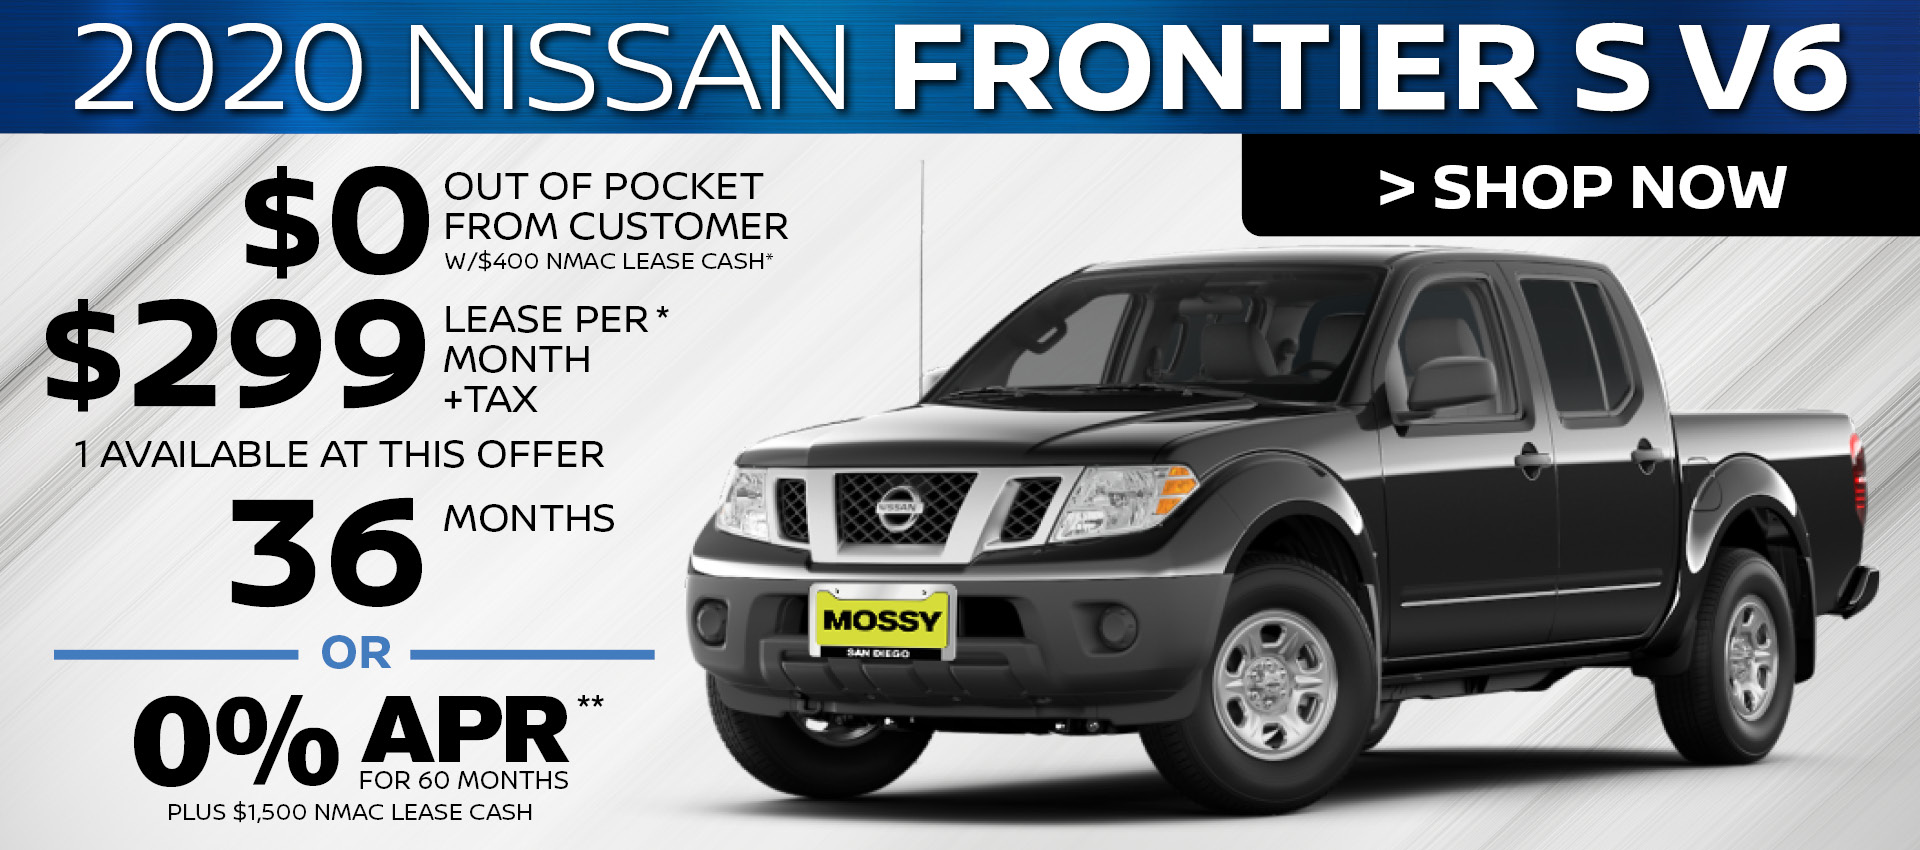 Mossy Nissan - Frontier HP